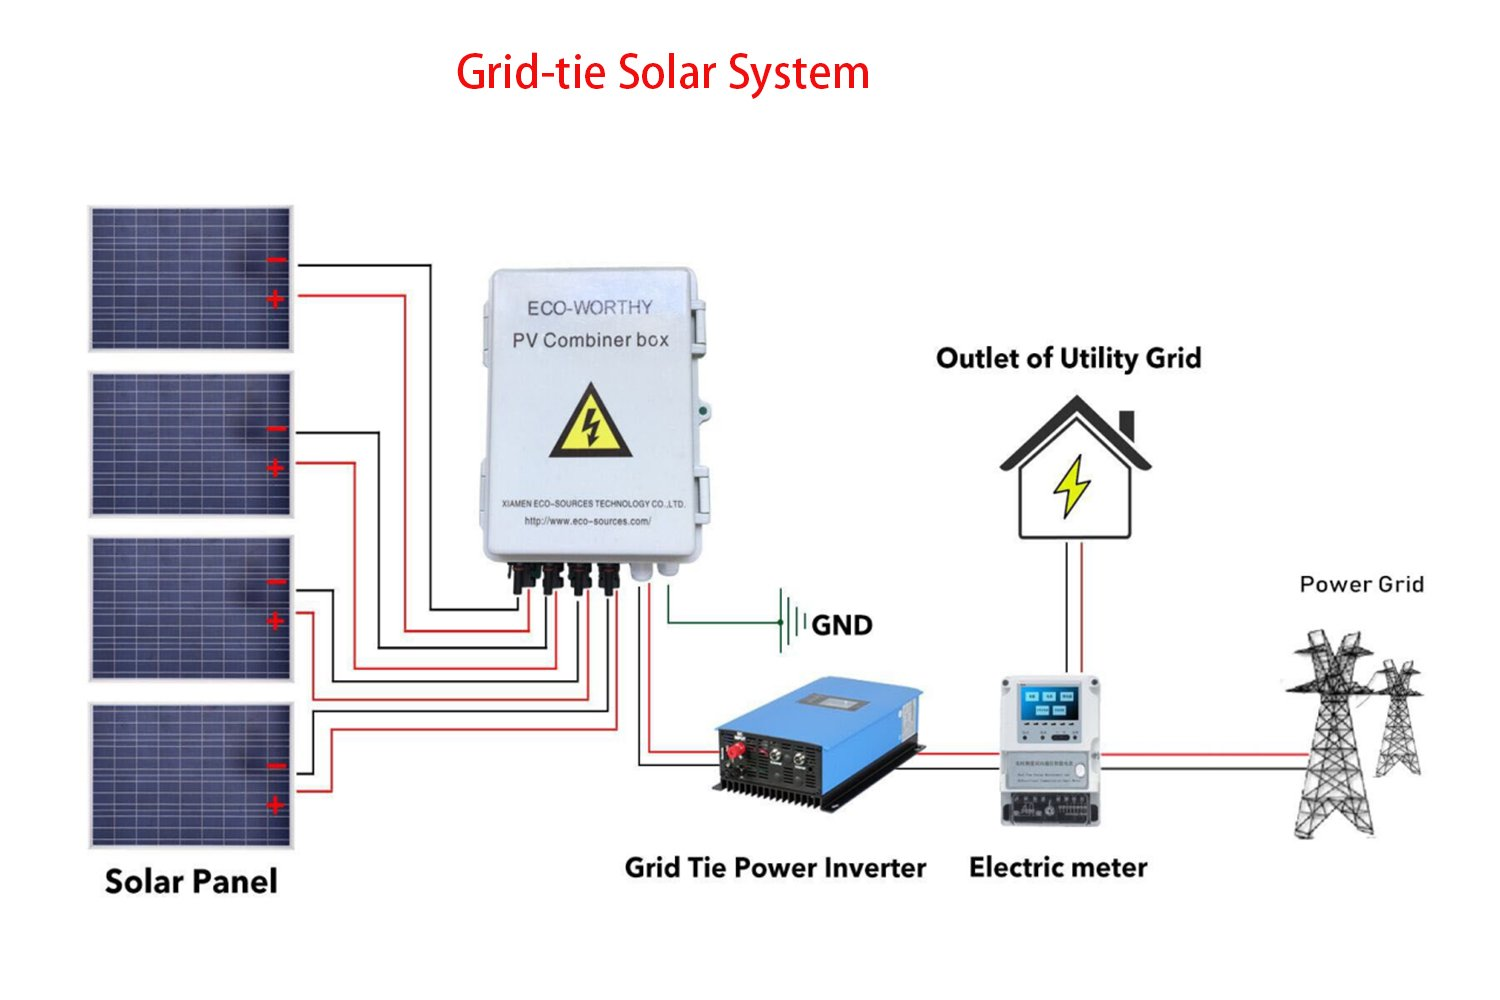 ECO LLC 4 String PV Combiner Box with Lighting Arrester, 10A Rated Current,Universal Solar Panel Connectors,Grounding Bus-Bar Ideal For Off-grid Solar System by ECO LLC (Image #5)